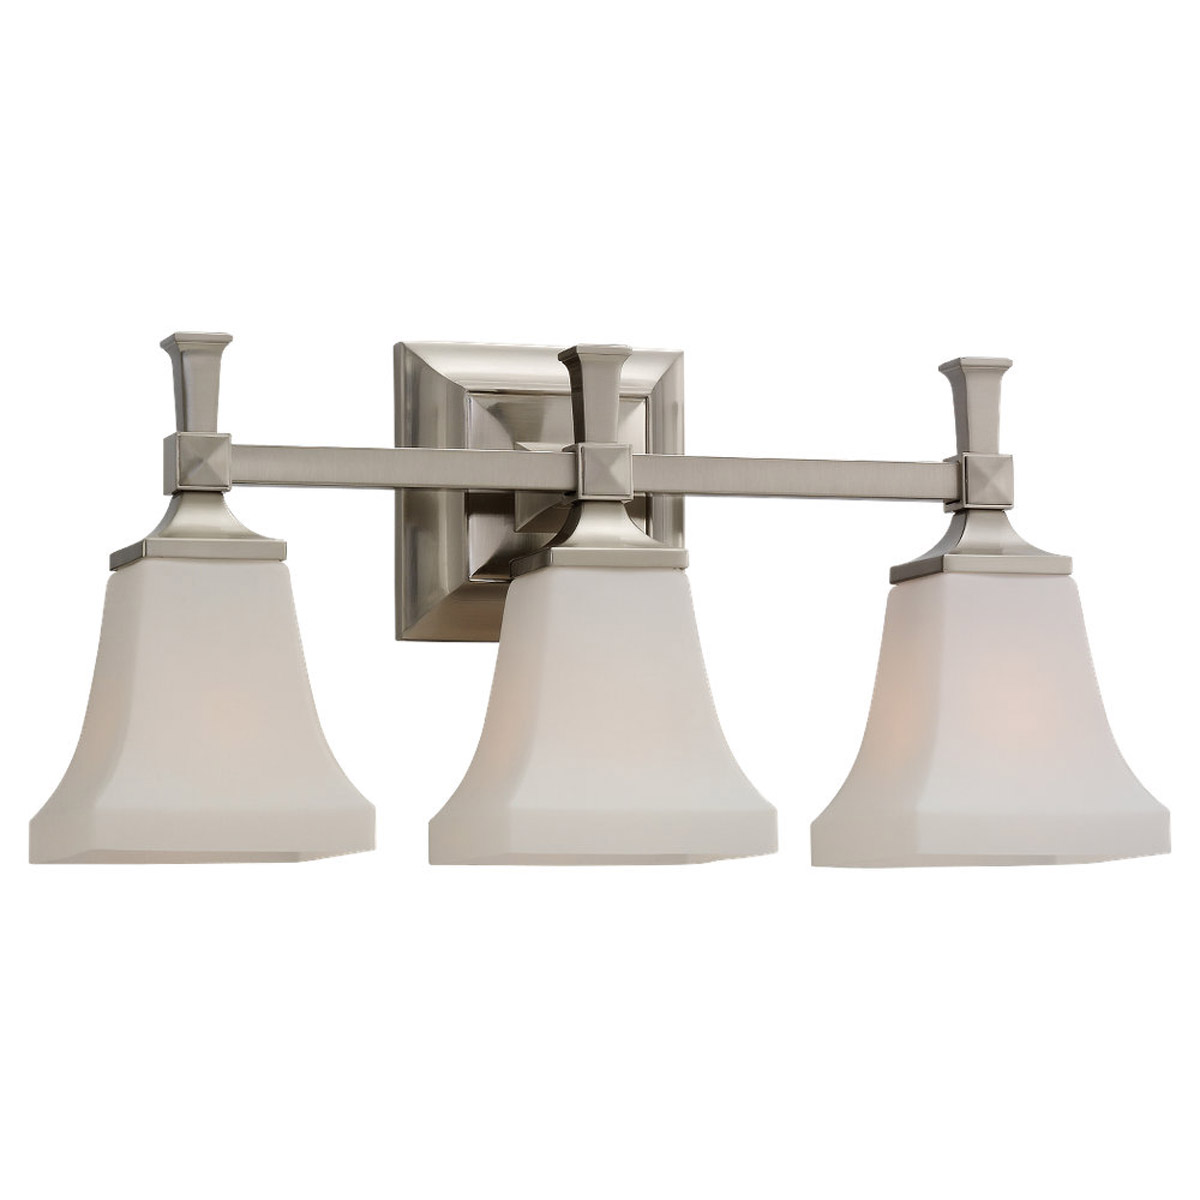 Sea Gull Lighting Melody 3 Light Bath Vanity in Brushed Nickel 44707-962